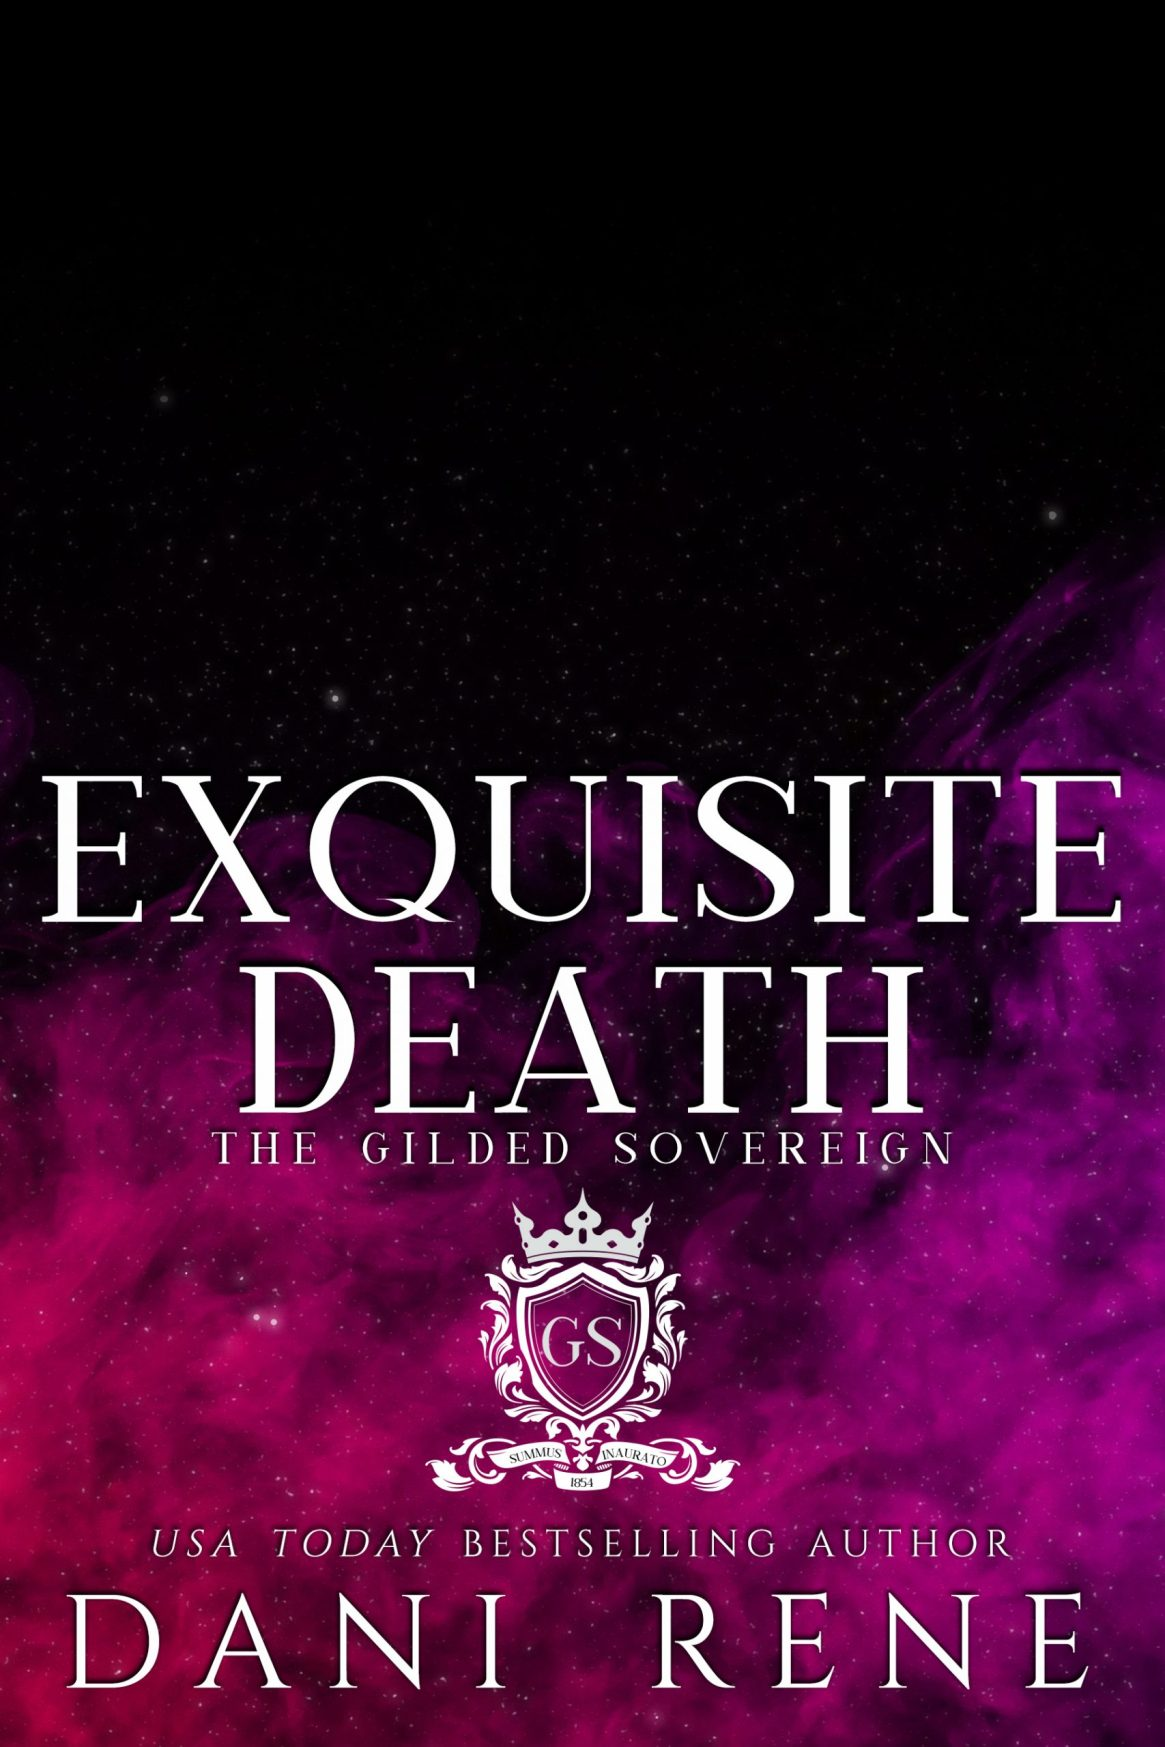 ExquisiteDeath_coverplaceholder